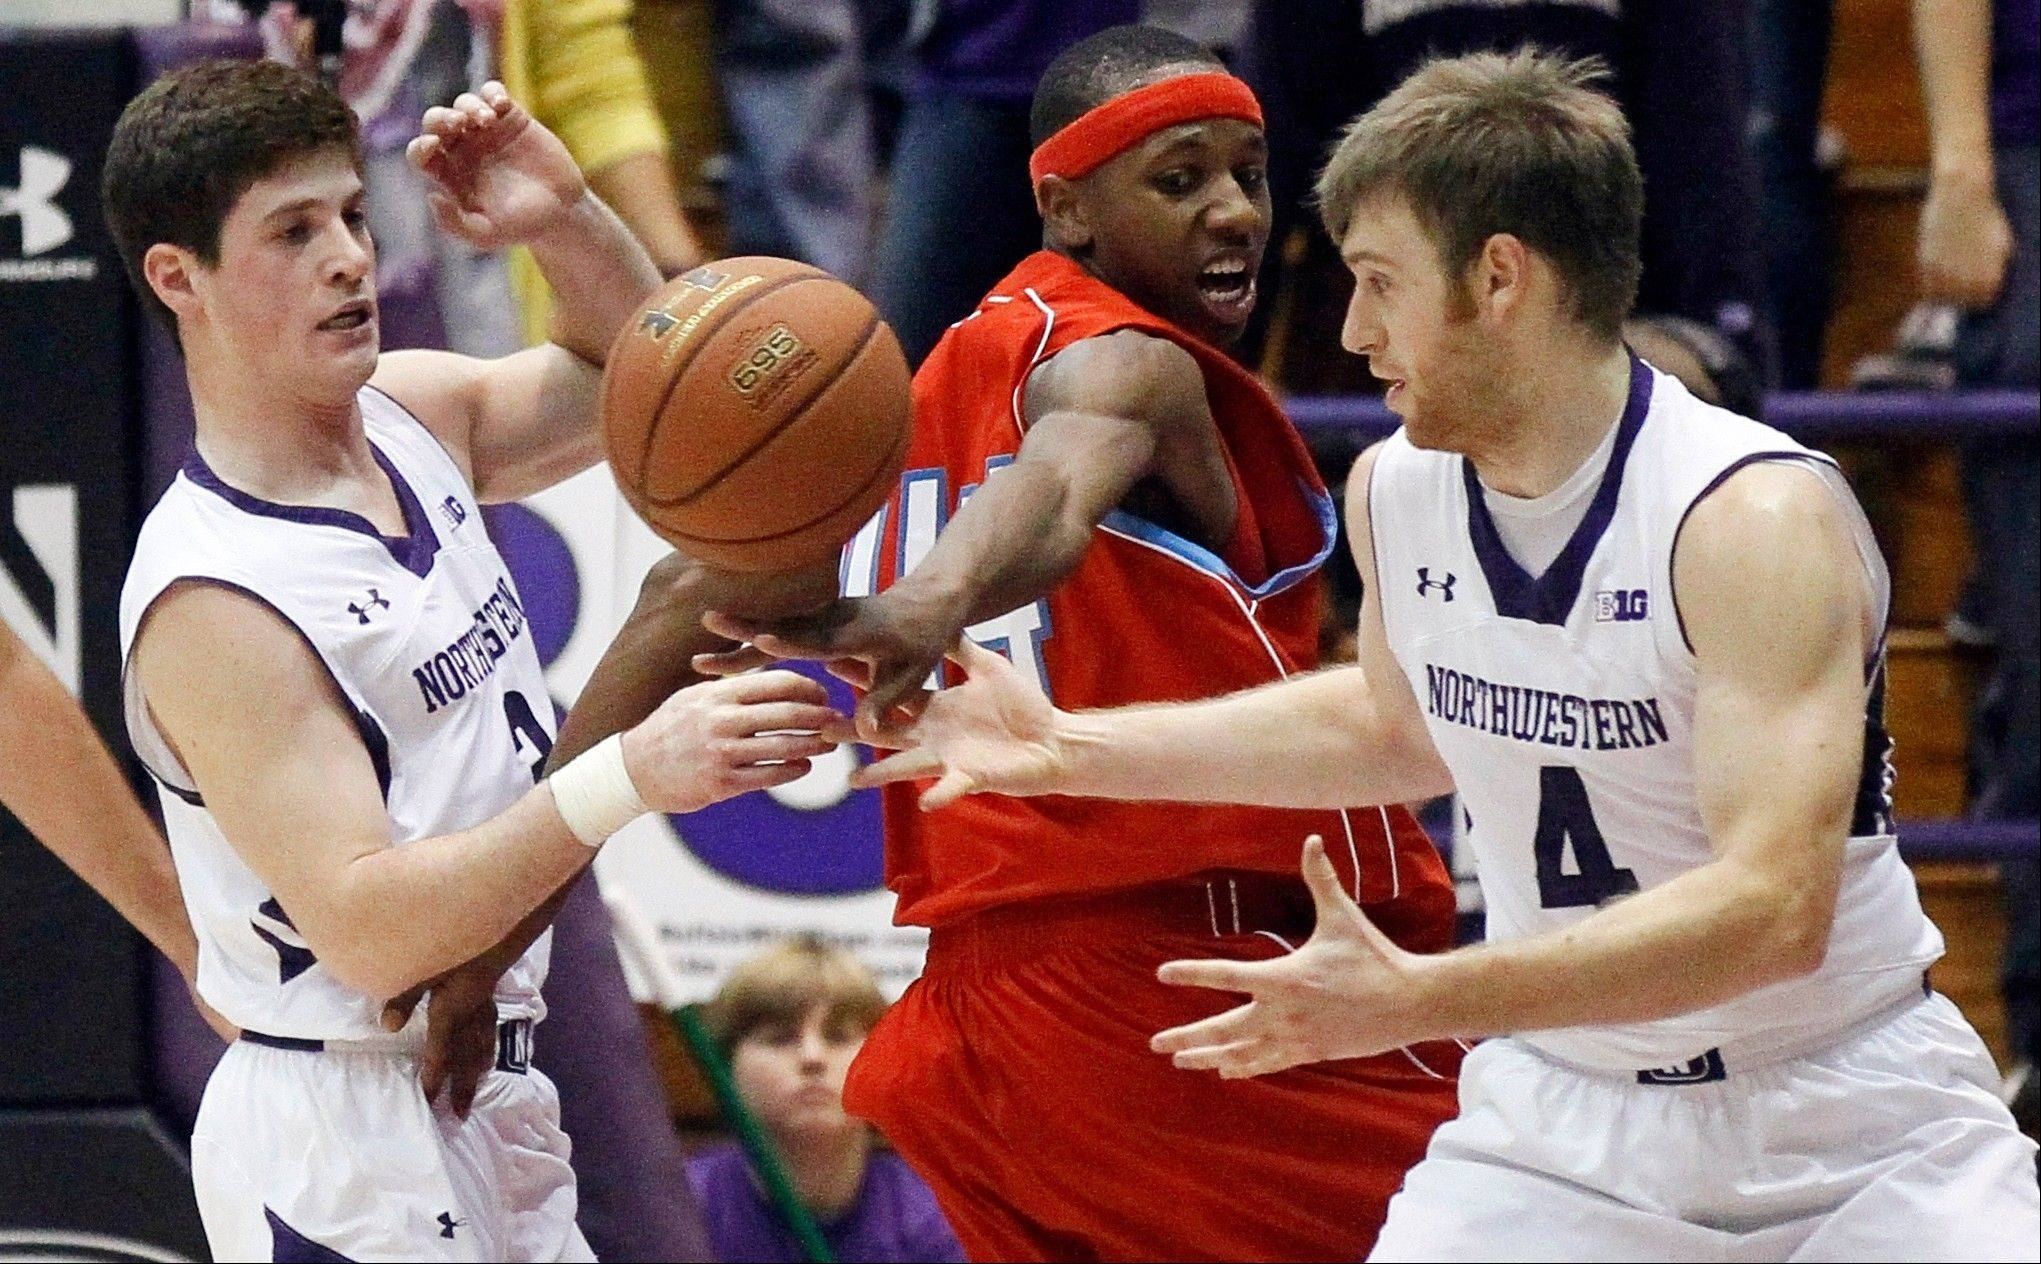 Delaware State guard Amere May loses control of the ball to Northwestern guard Dave Sobolewski (3) and guard Alex Marcotullio Tuesday during the second half in Evanston. Northwestern won 69-50.